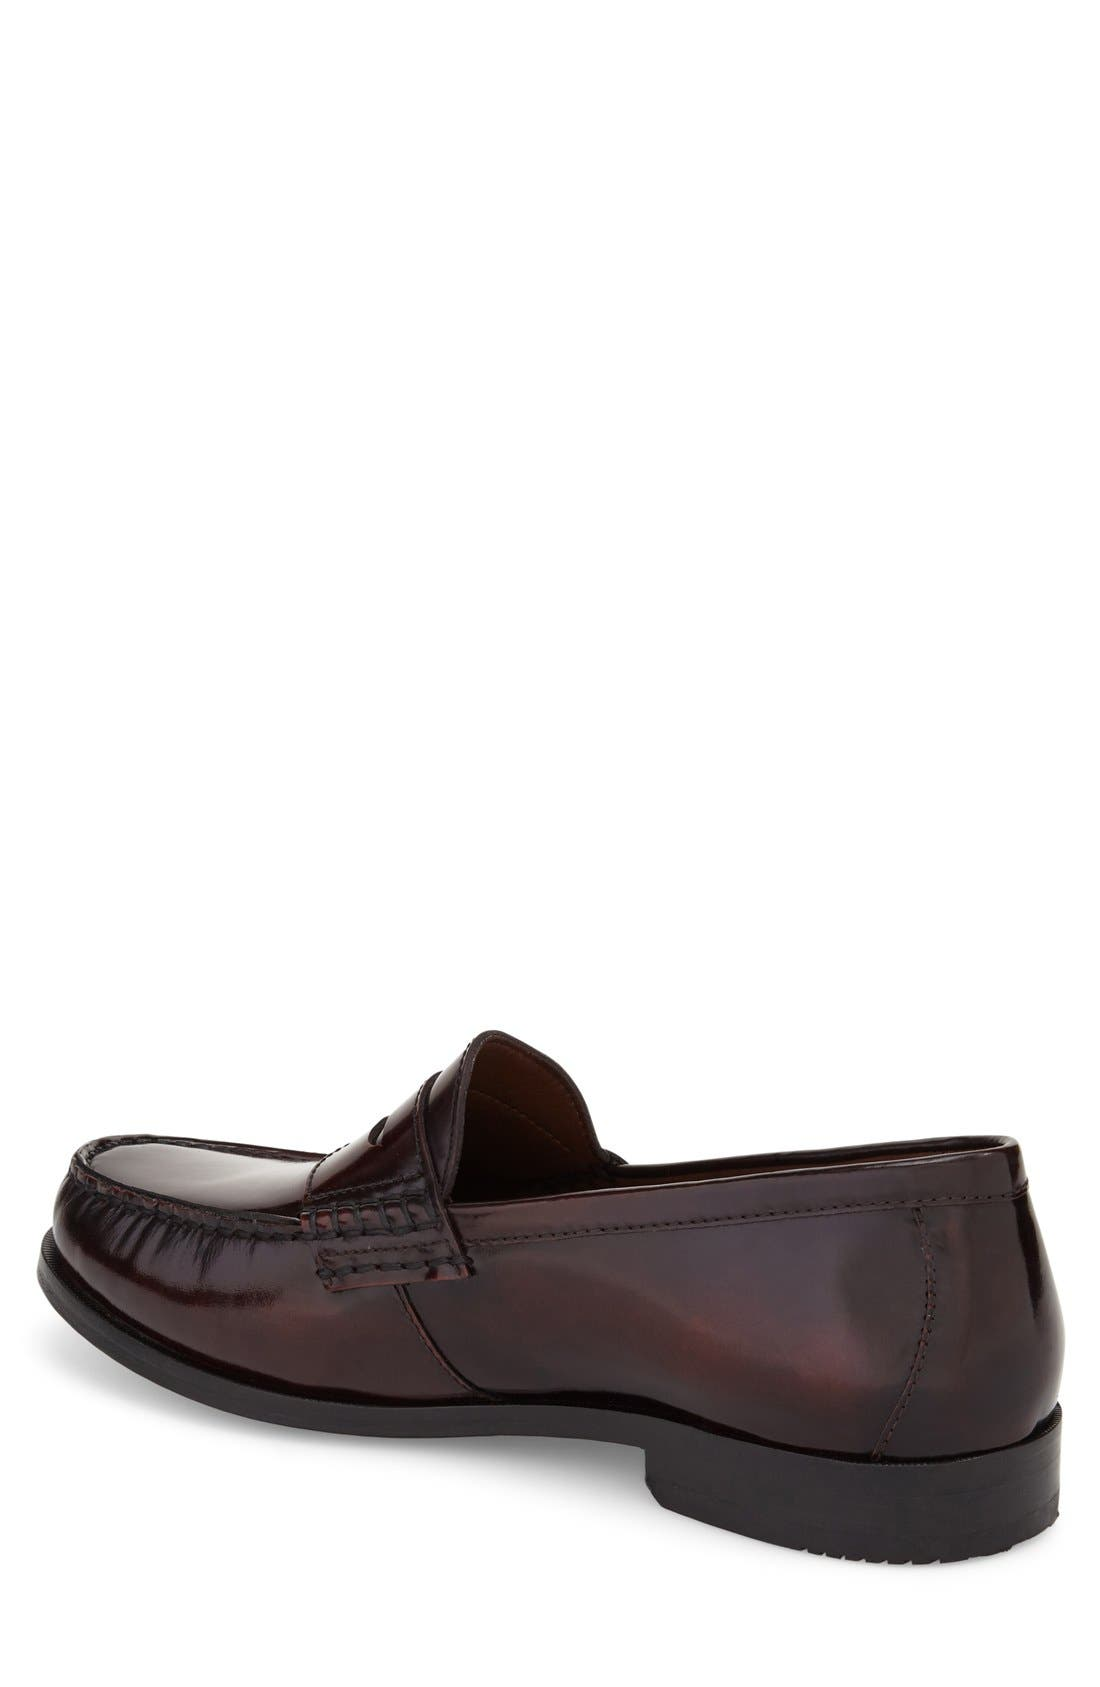 Pannell Penny Loafer,                             Alternate thumbnail 2, color,                             933